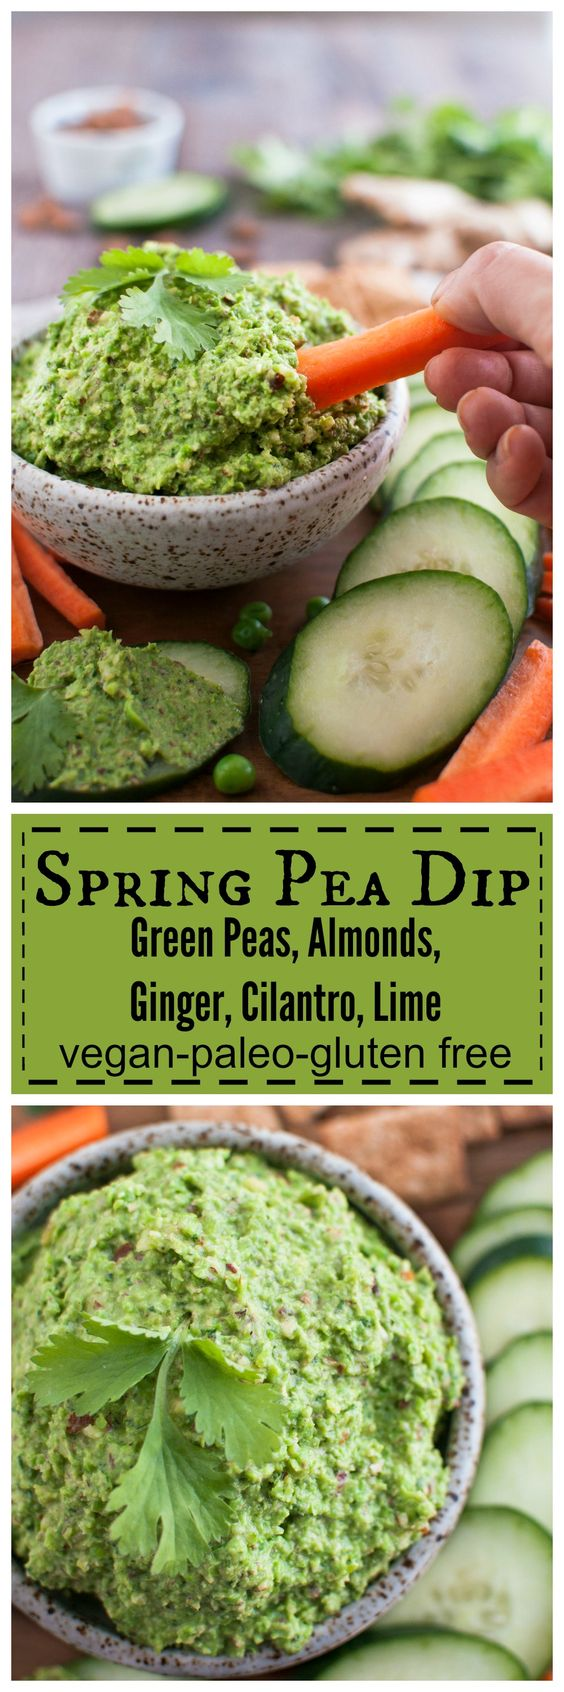 Spring Pea Dip with Amonds, Ginger, Cilantro, and Lime only 5 minutes ...